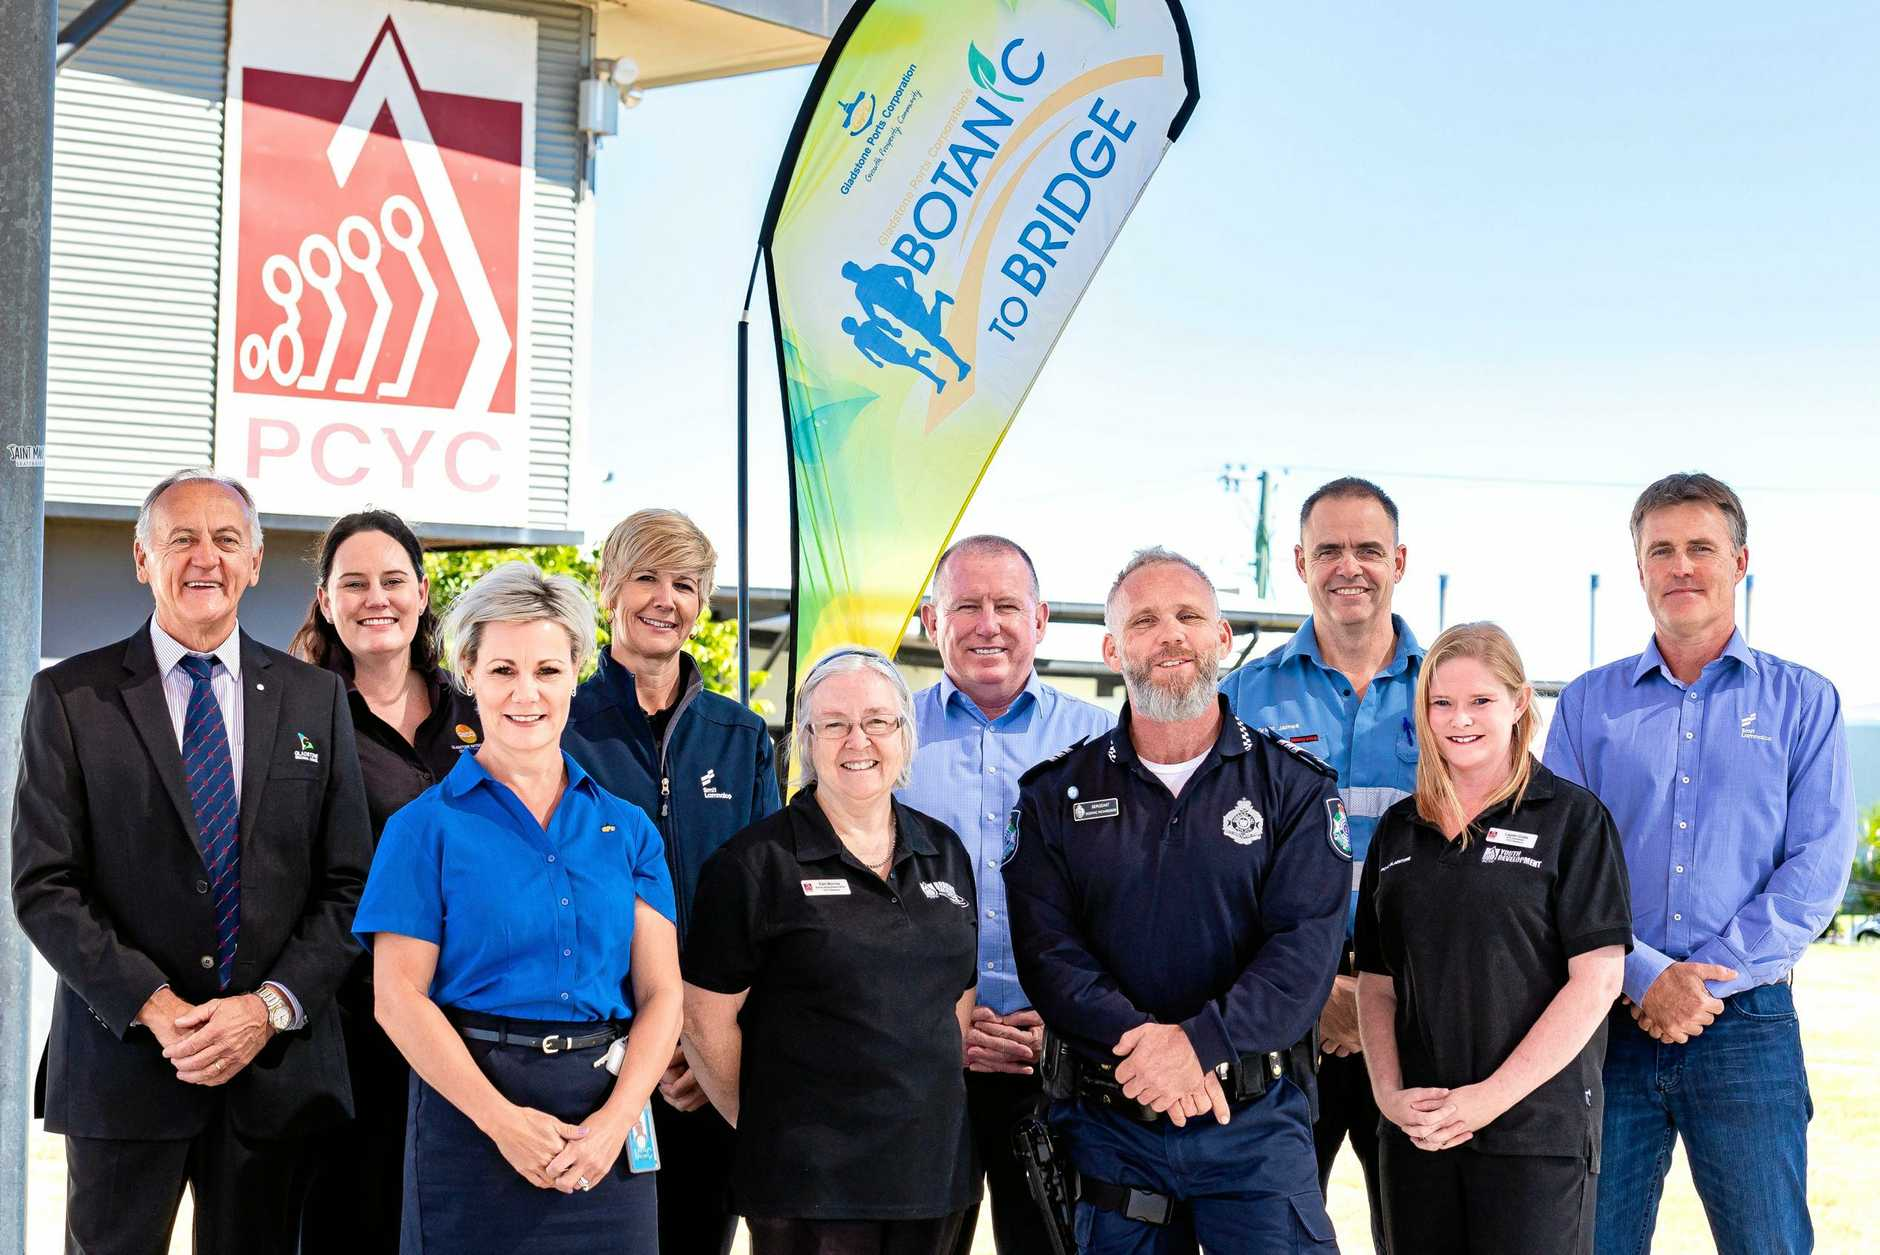 BIG DOLLARS: Gladstone Ports Corporation has announced Gladstone PCYC as the major community beneficiary for this year's fun run.